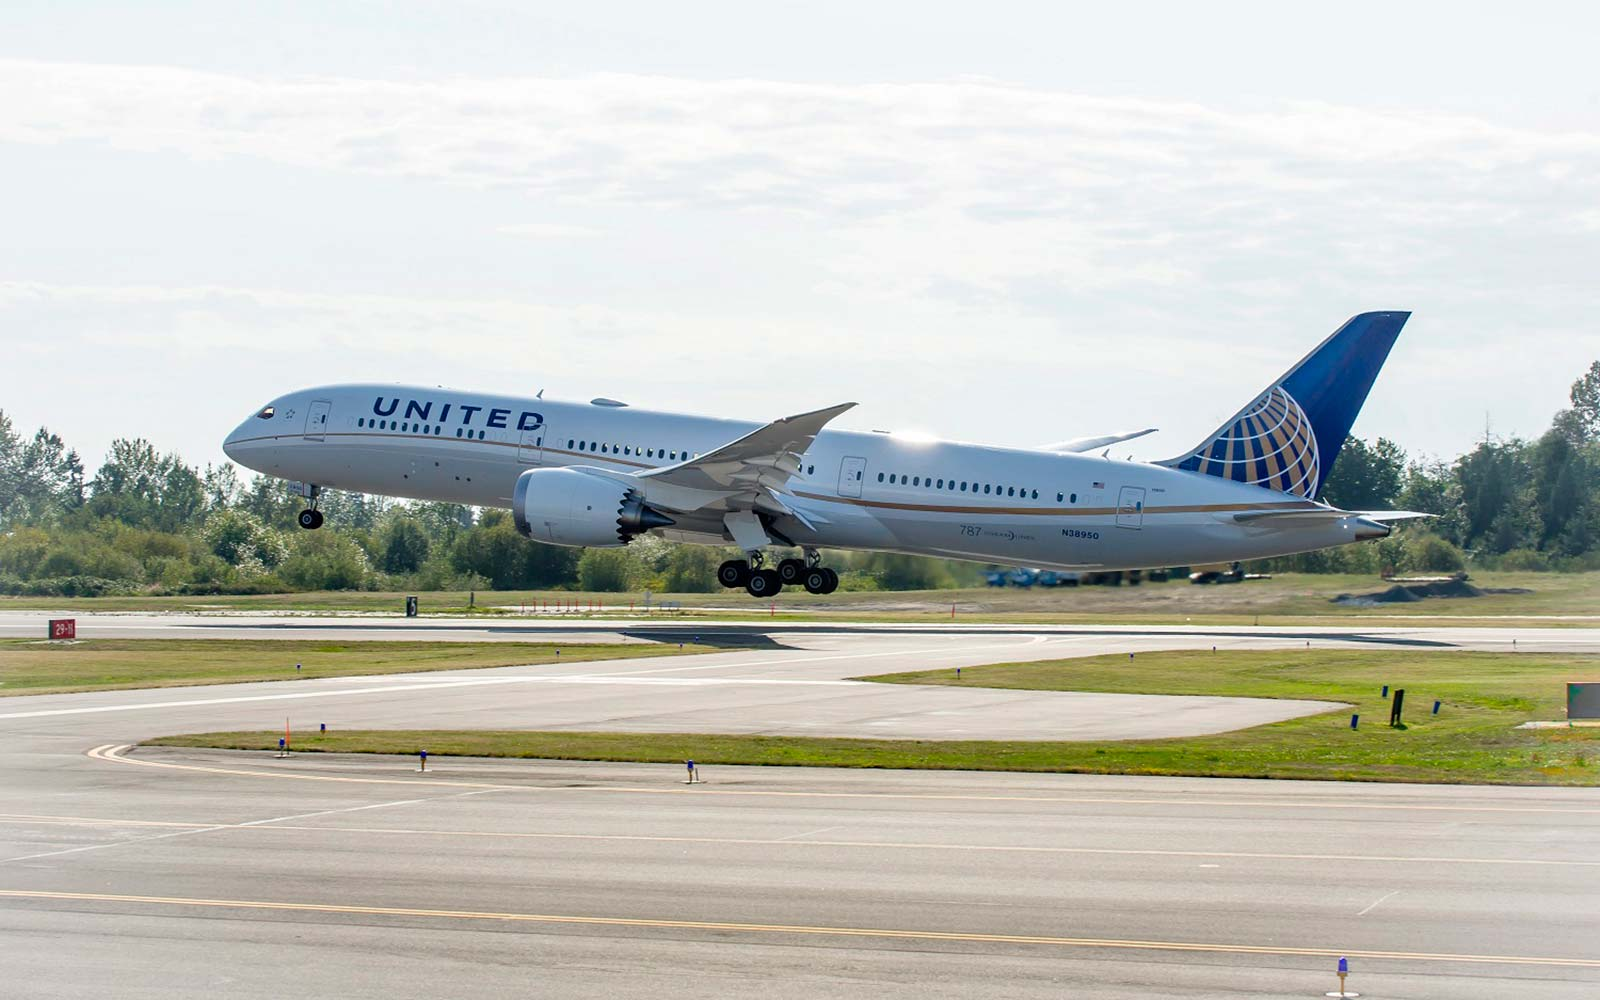 United Airlines Boeing Dreamliner 787 airplane